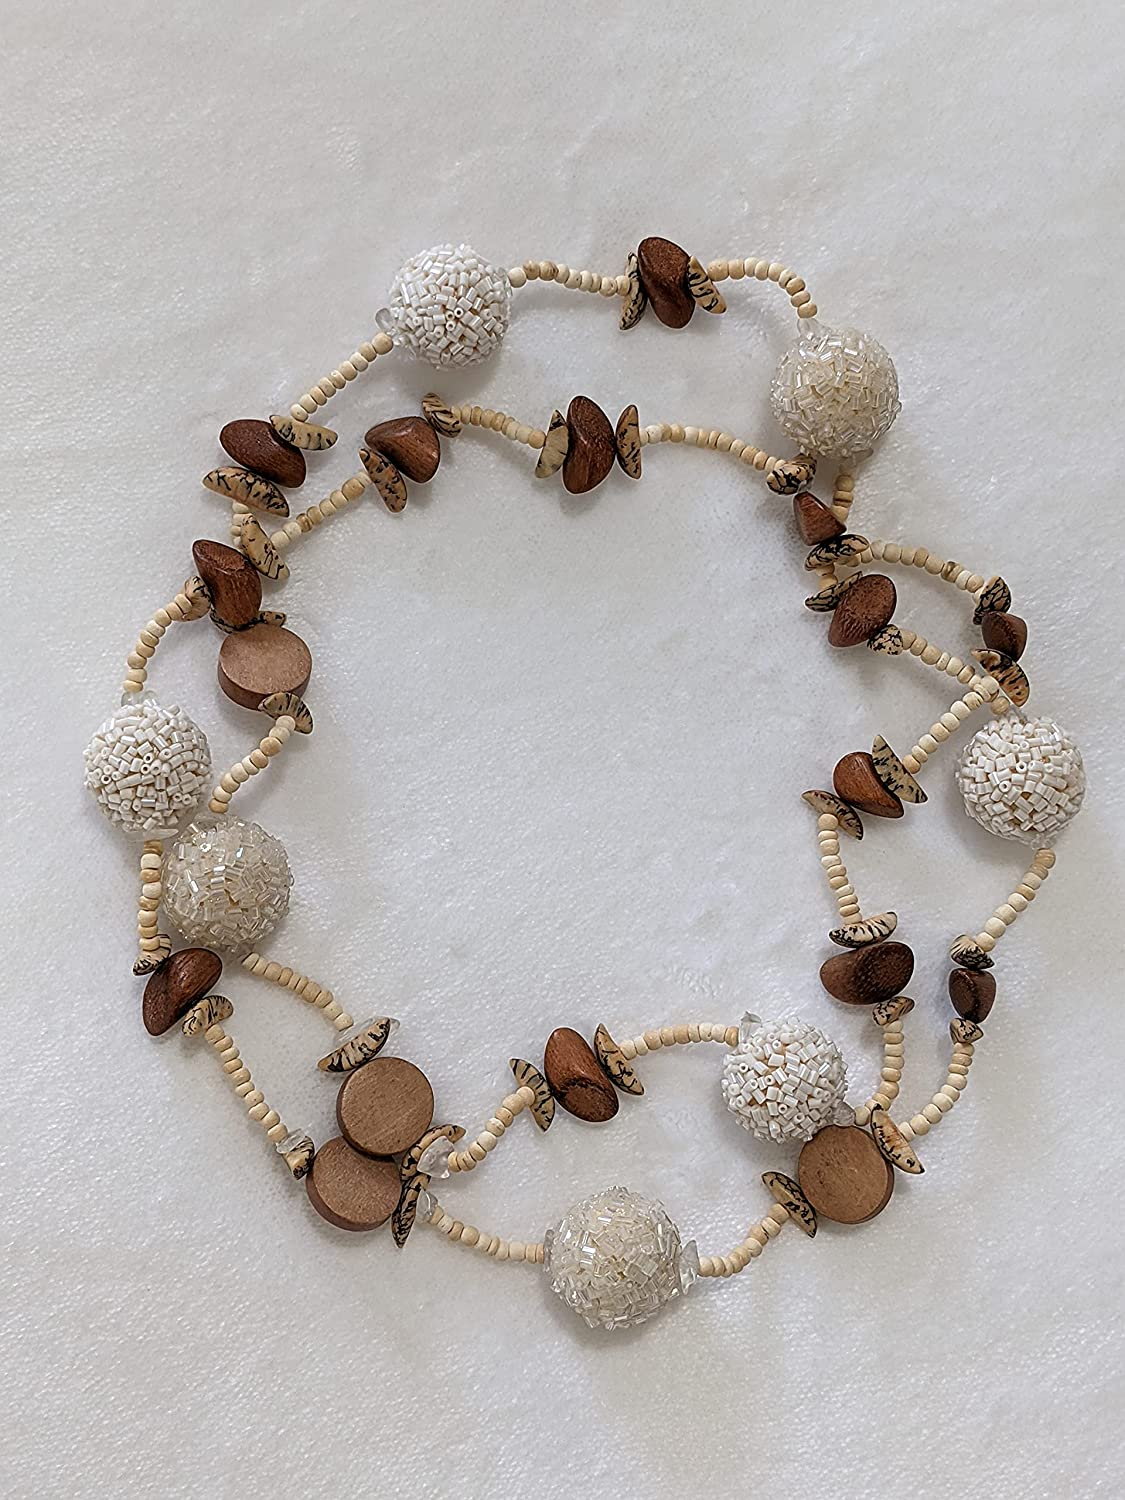 Necklace wood coco shell and Popular c brown 42-inch sold out cream glass